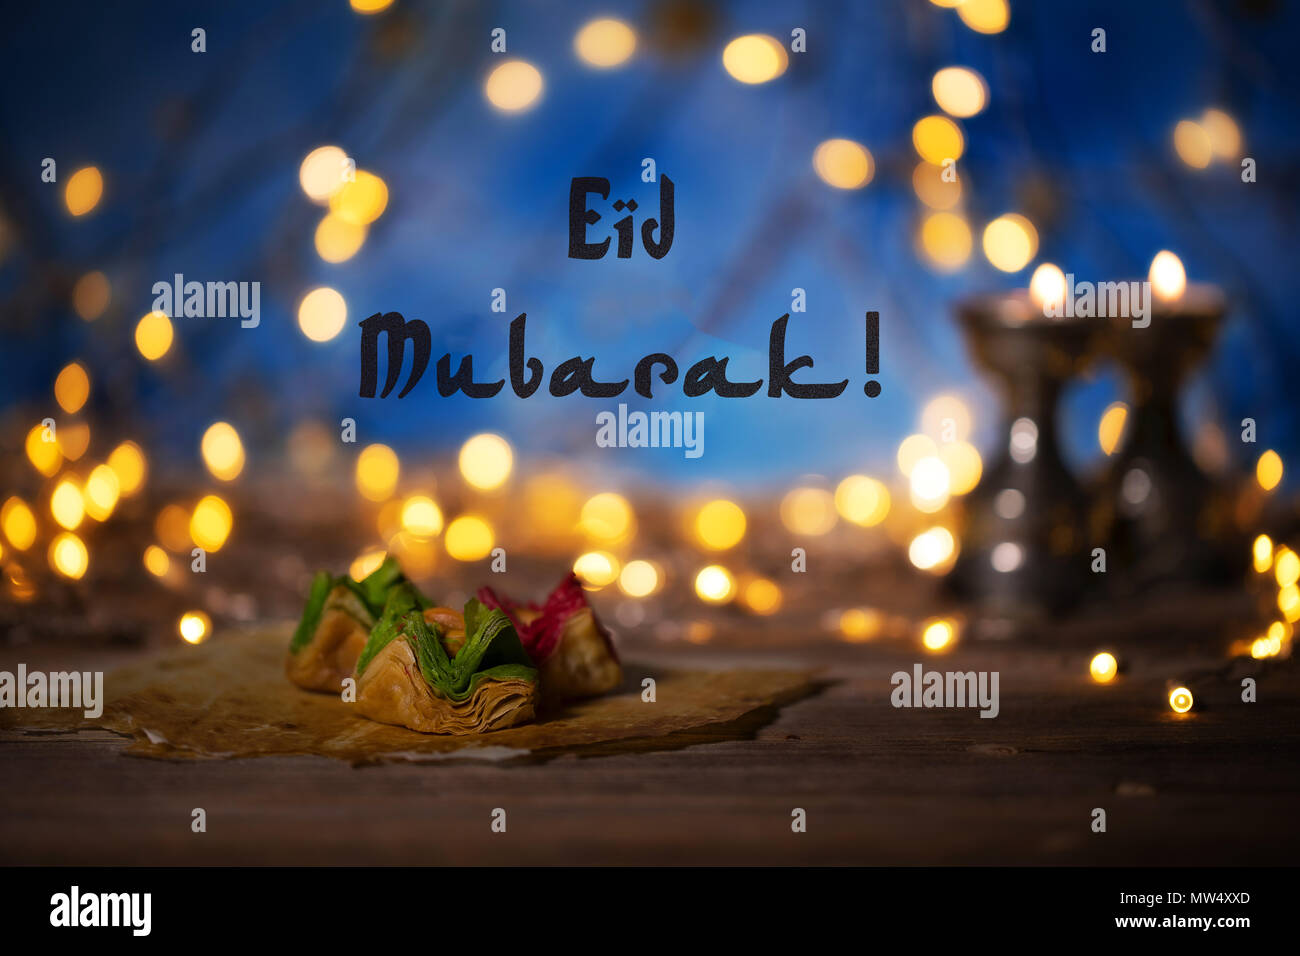 Eid mubarak arabic stock photos eid mubarak arabic stock images congratulation eid mubarak arabic sweets on a wooden surface candle holders night m4hsunfo